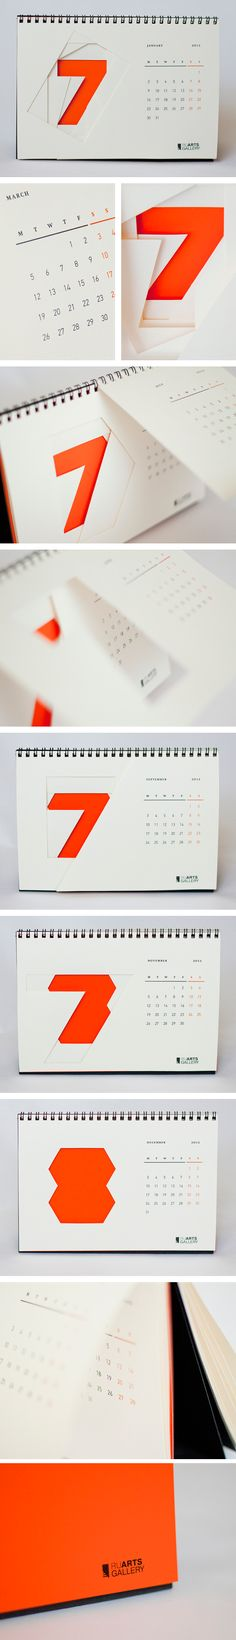 RuArts gallery calendar on Behance